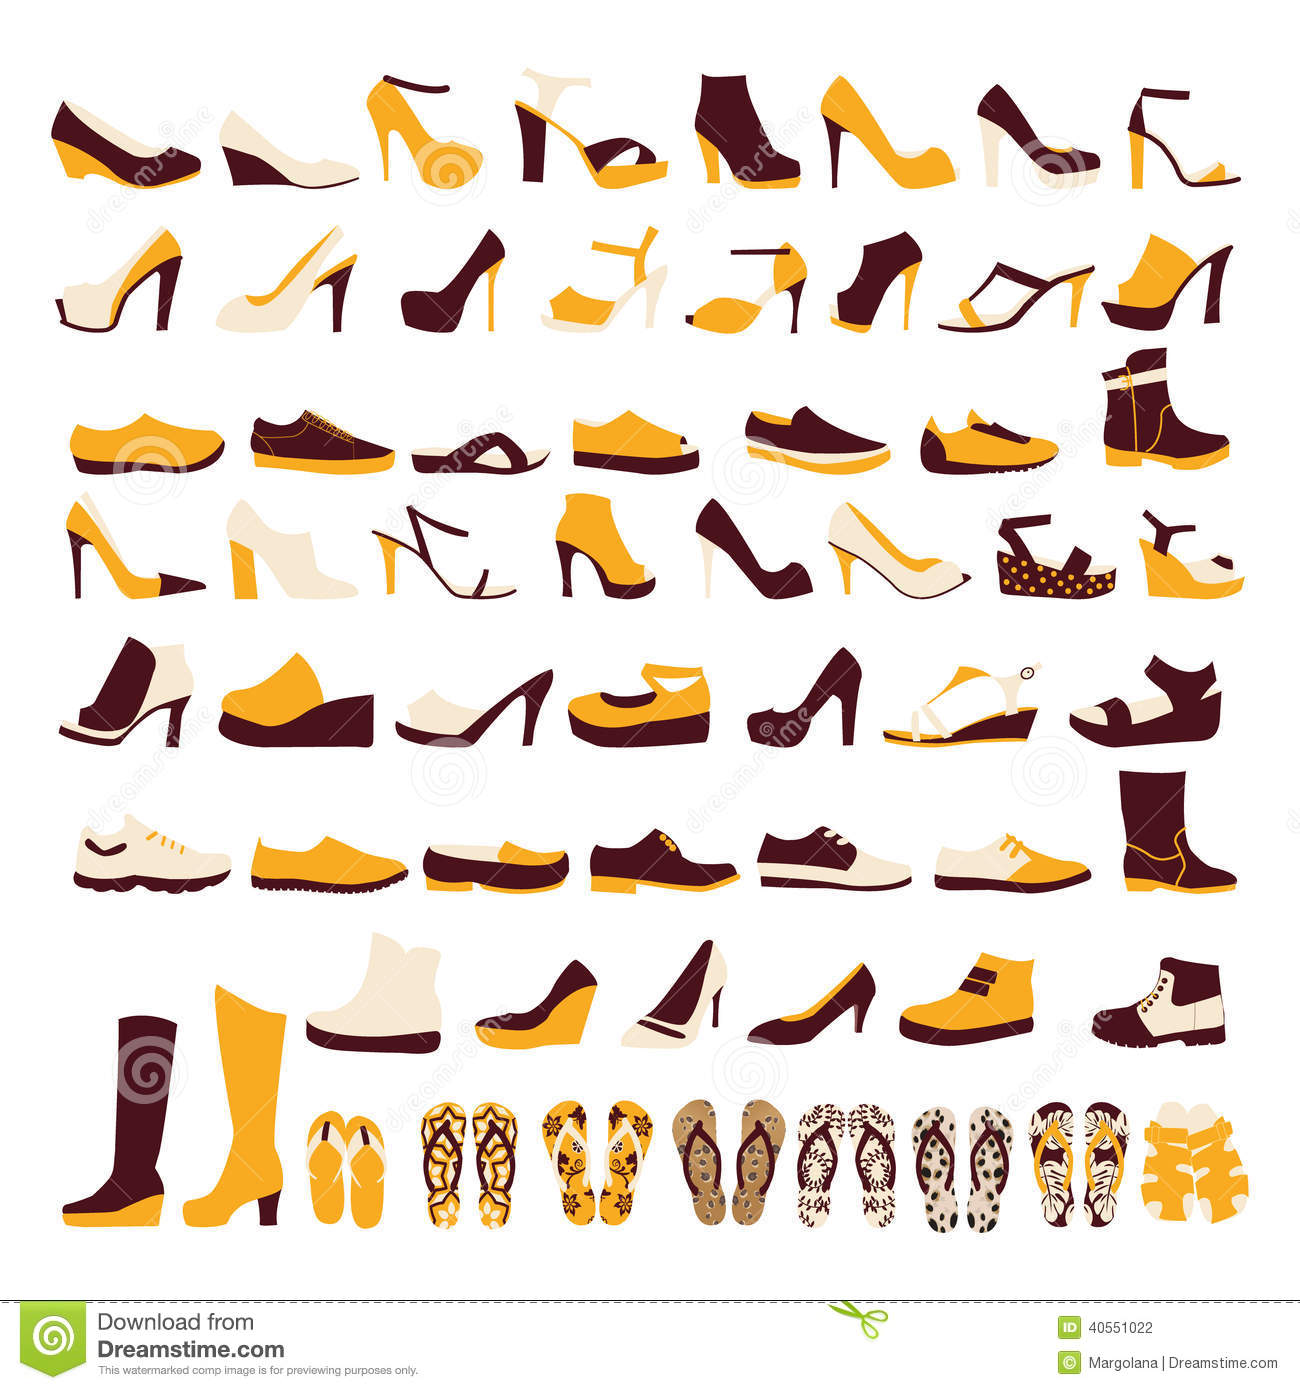 7754c17b9627 Icon Set Of Men s And Of Women s Shoes Stock Vector - Illustration ...